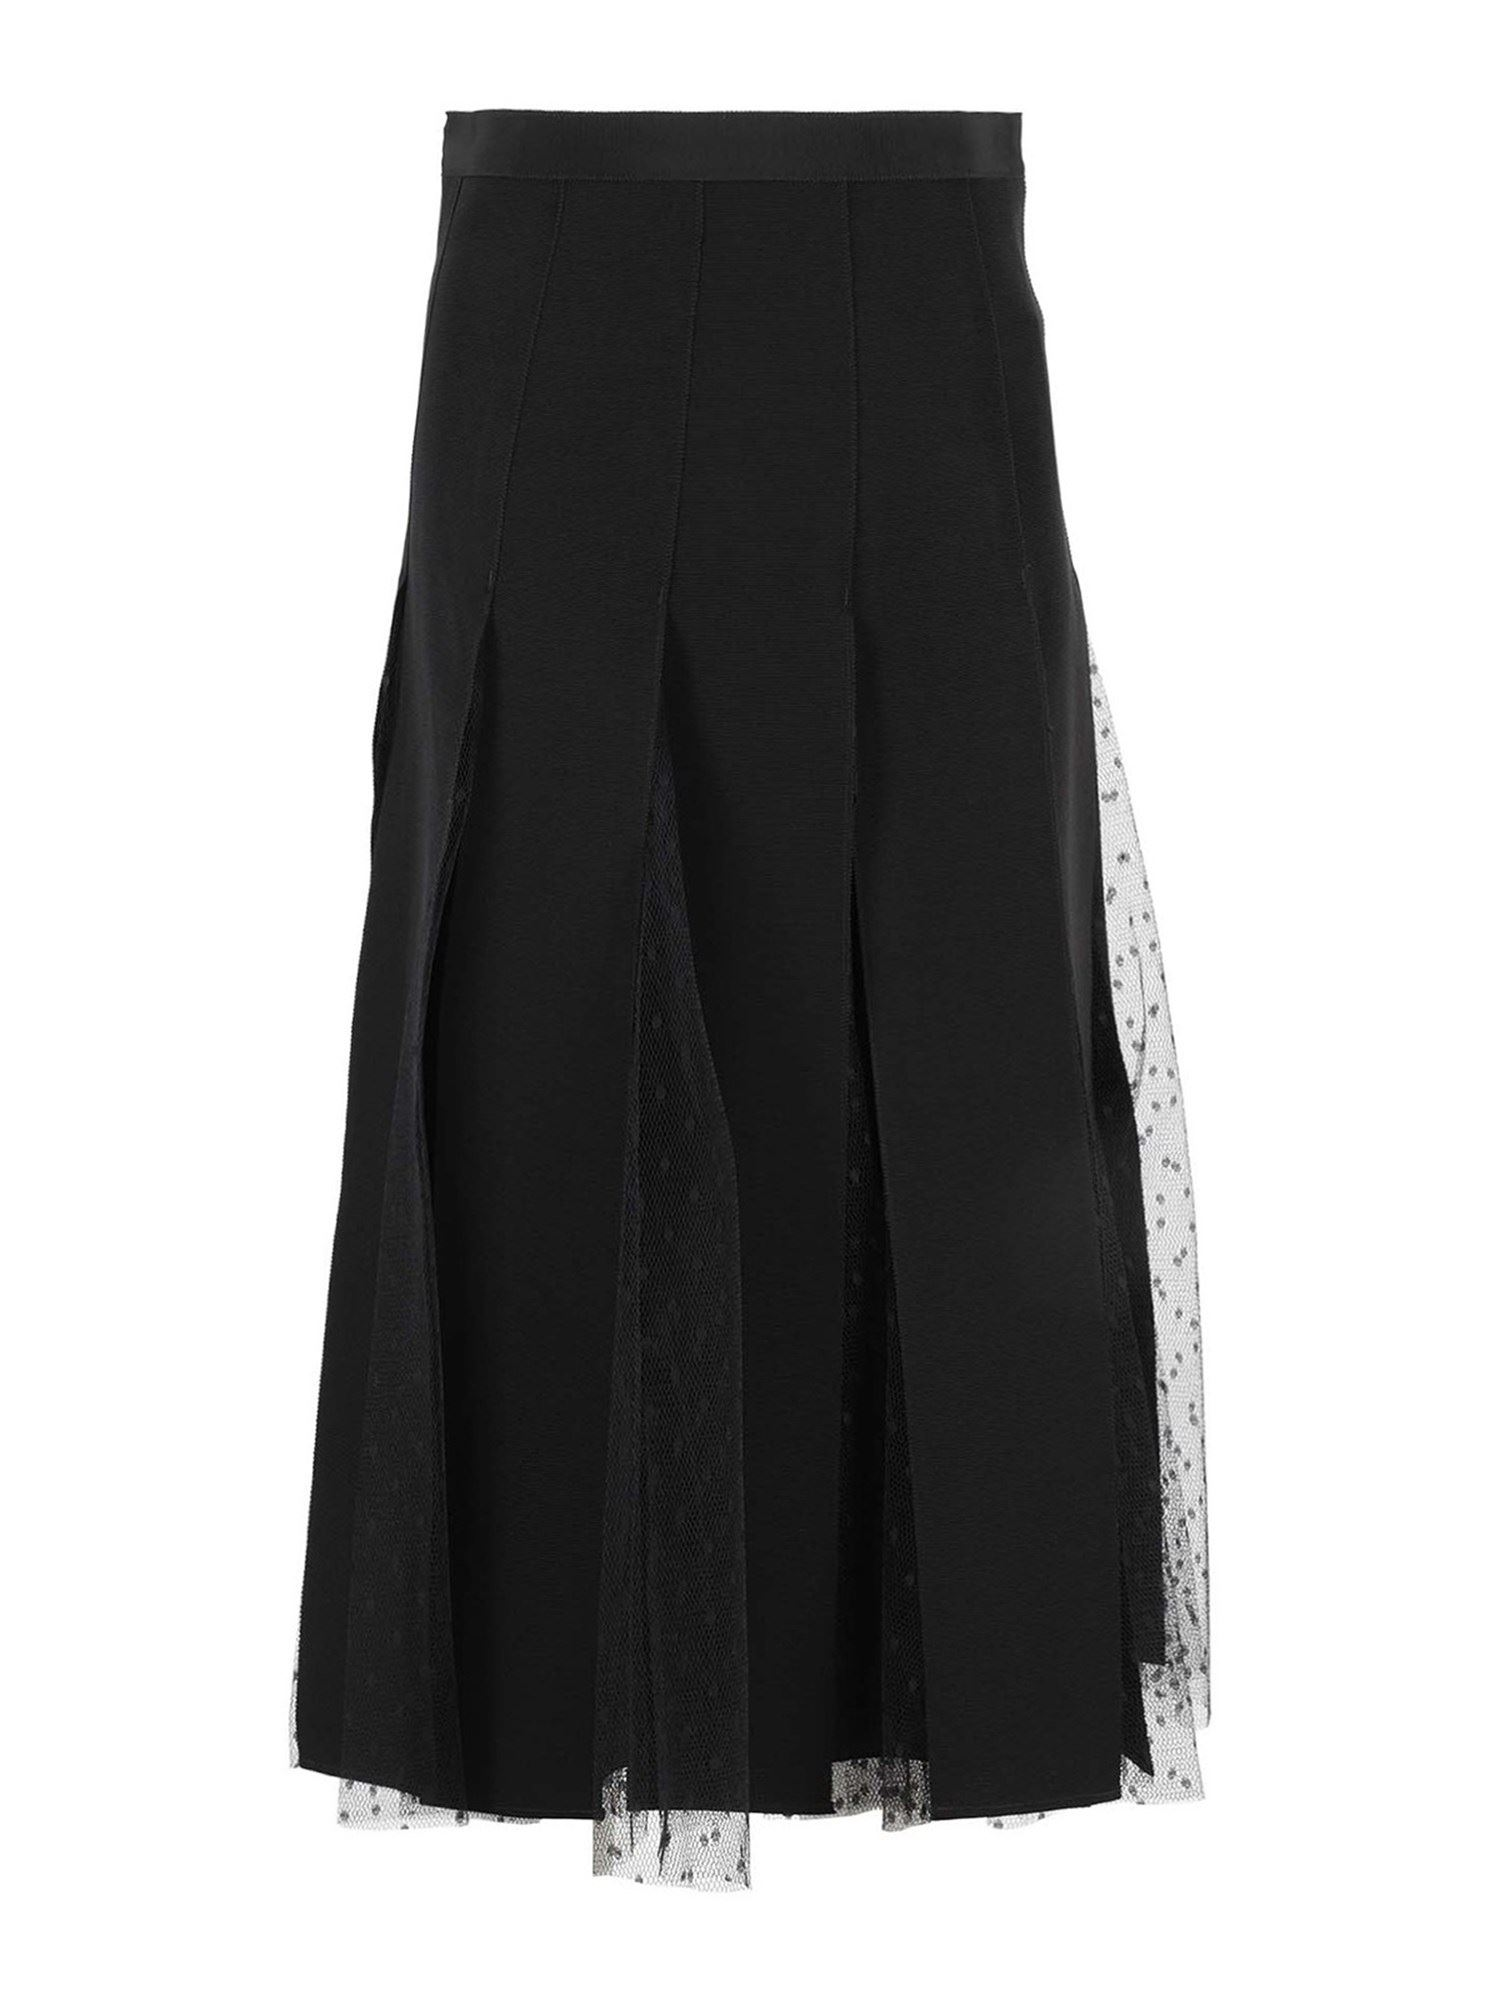 Red Valentino PLEATED SKIRT WITH TULLE DETAILS IN BLACK